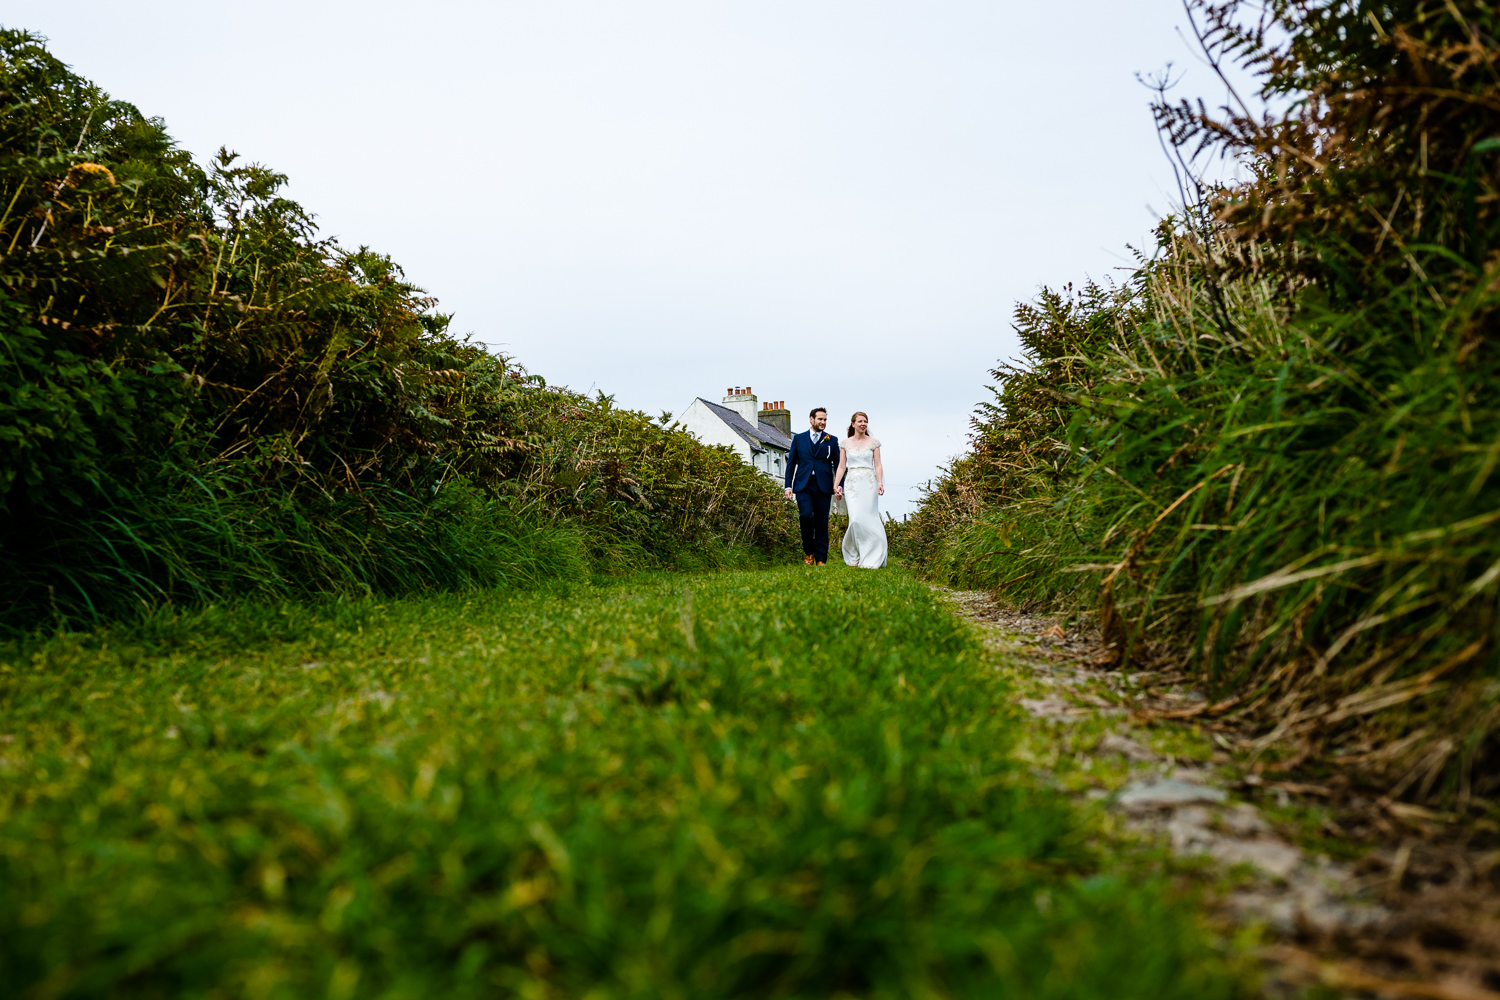 Stef-Simon-Anglesey-wedding-photogrpher-78.jpg